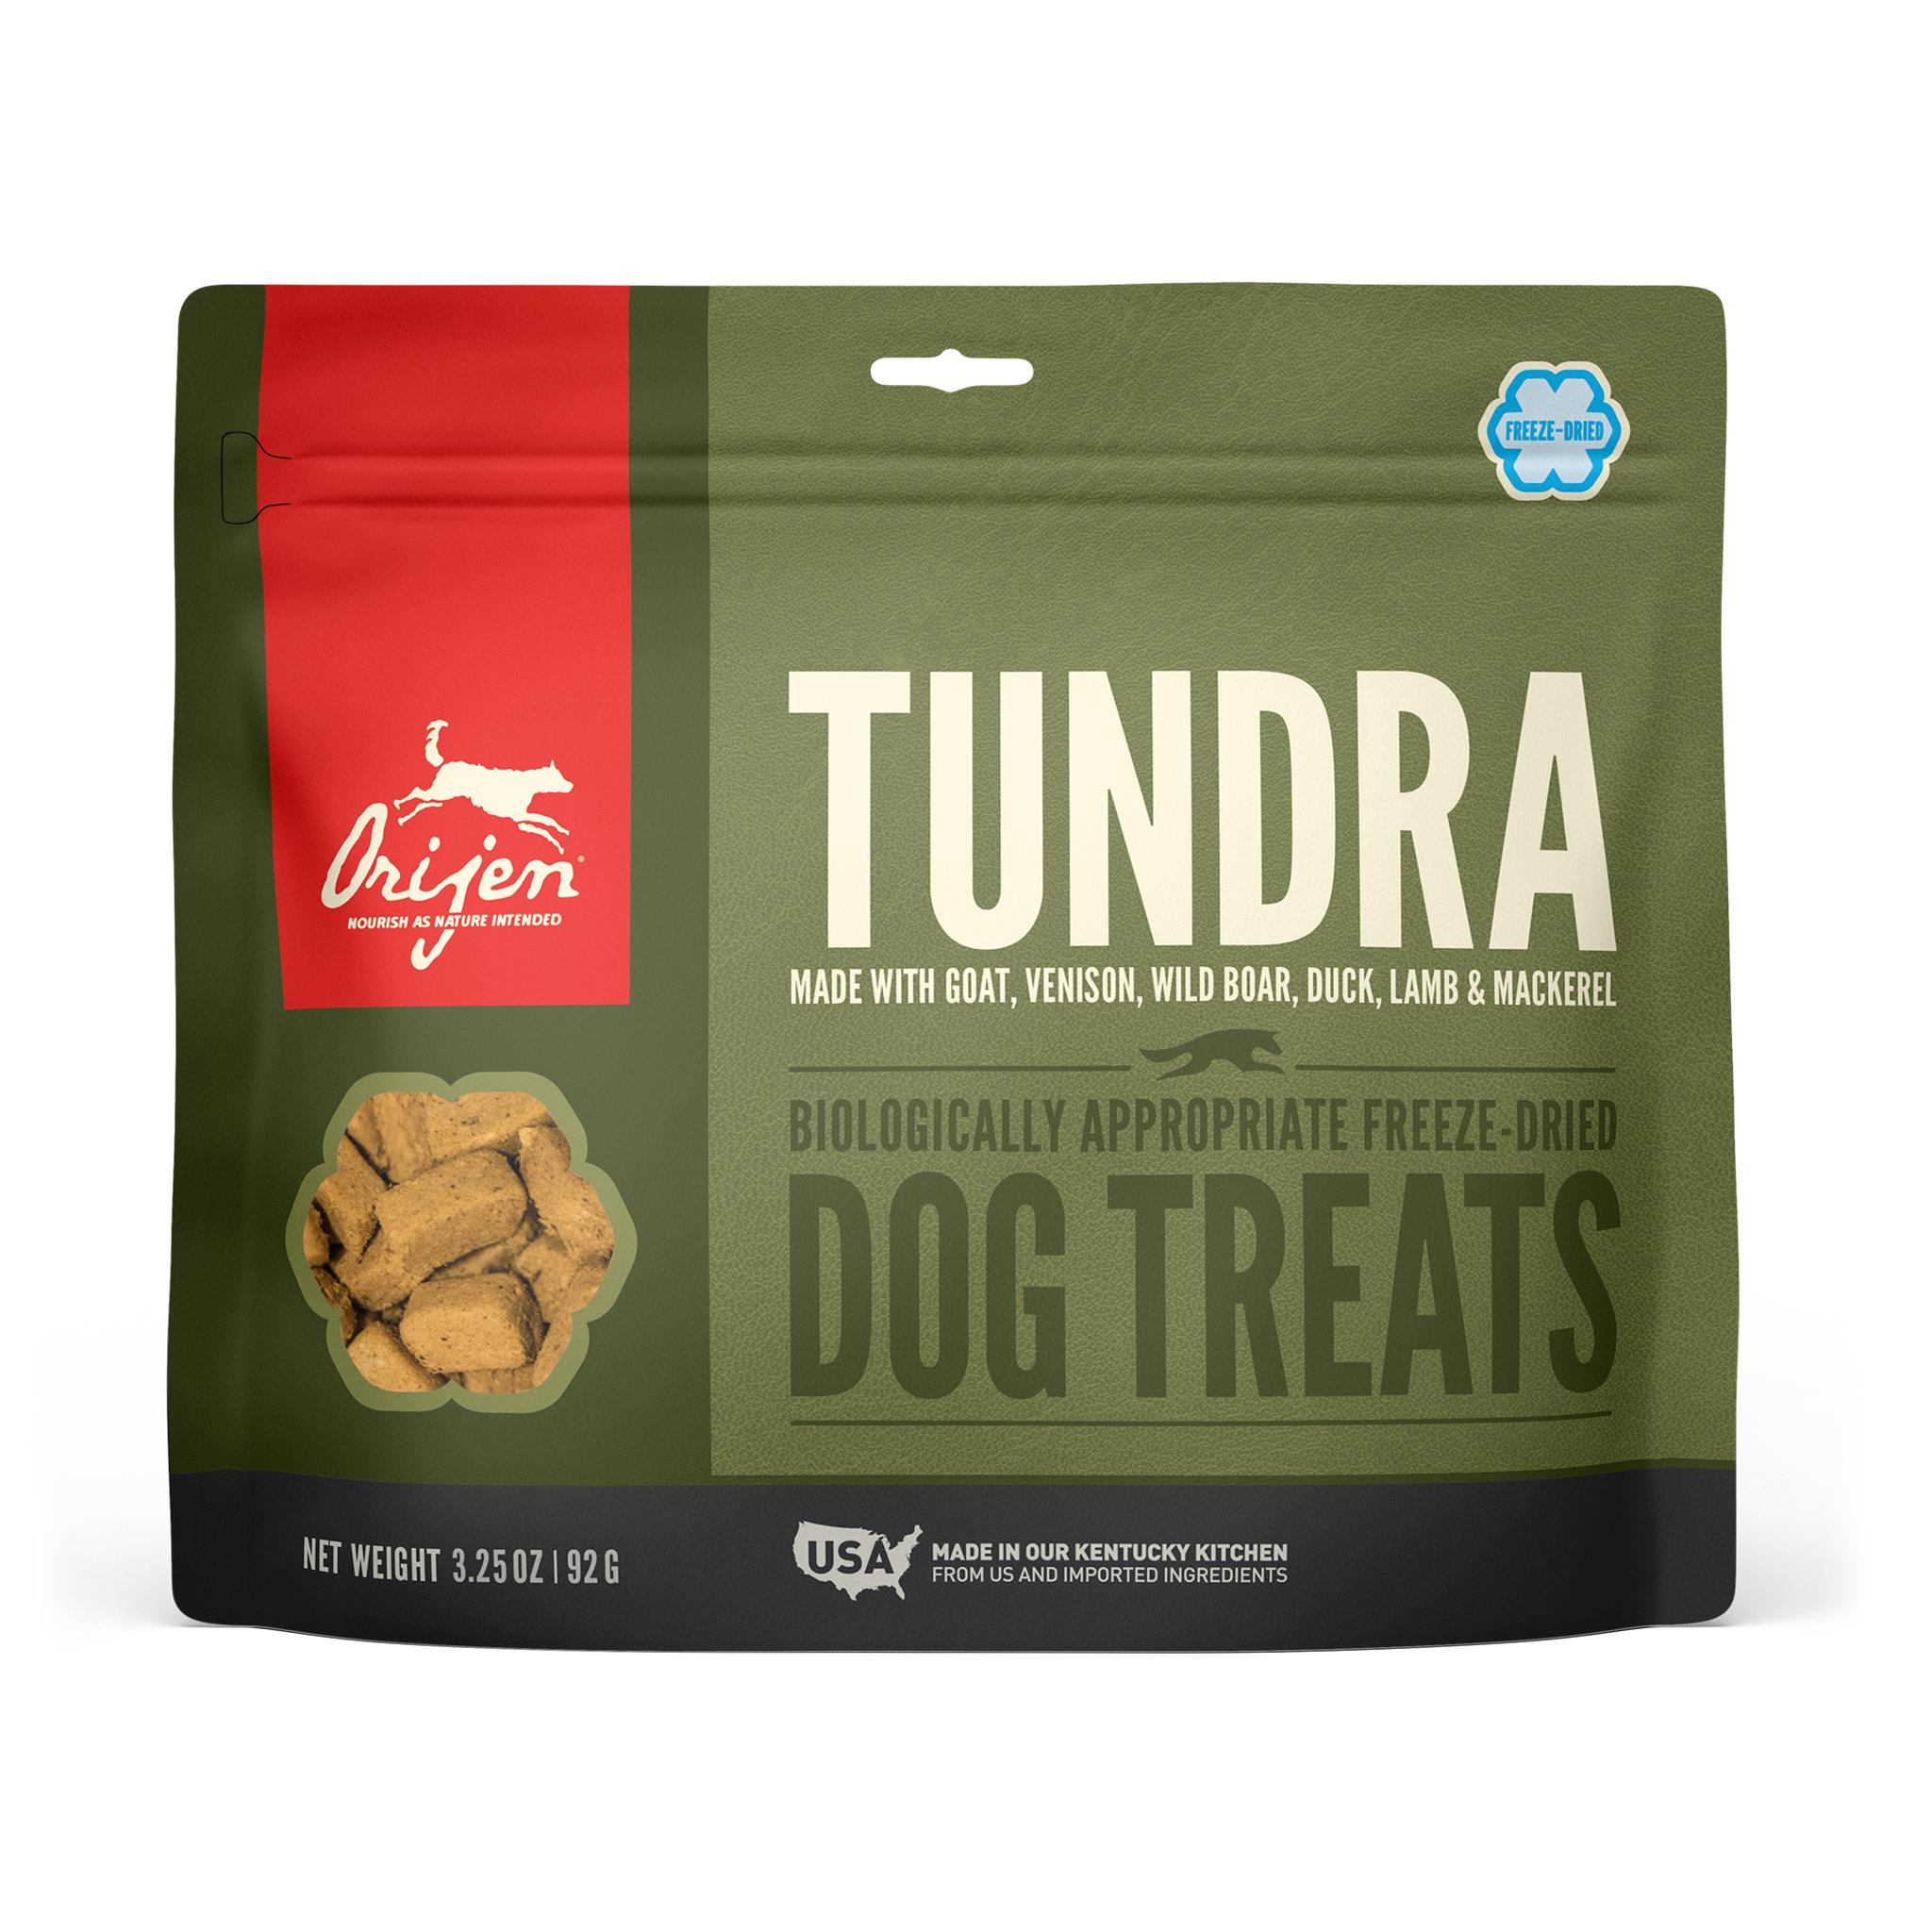 ORIJEN Tundra Grain-Free Freeze-Dried Dog Treats, 3.25-oz